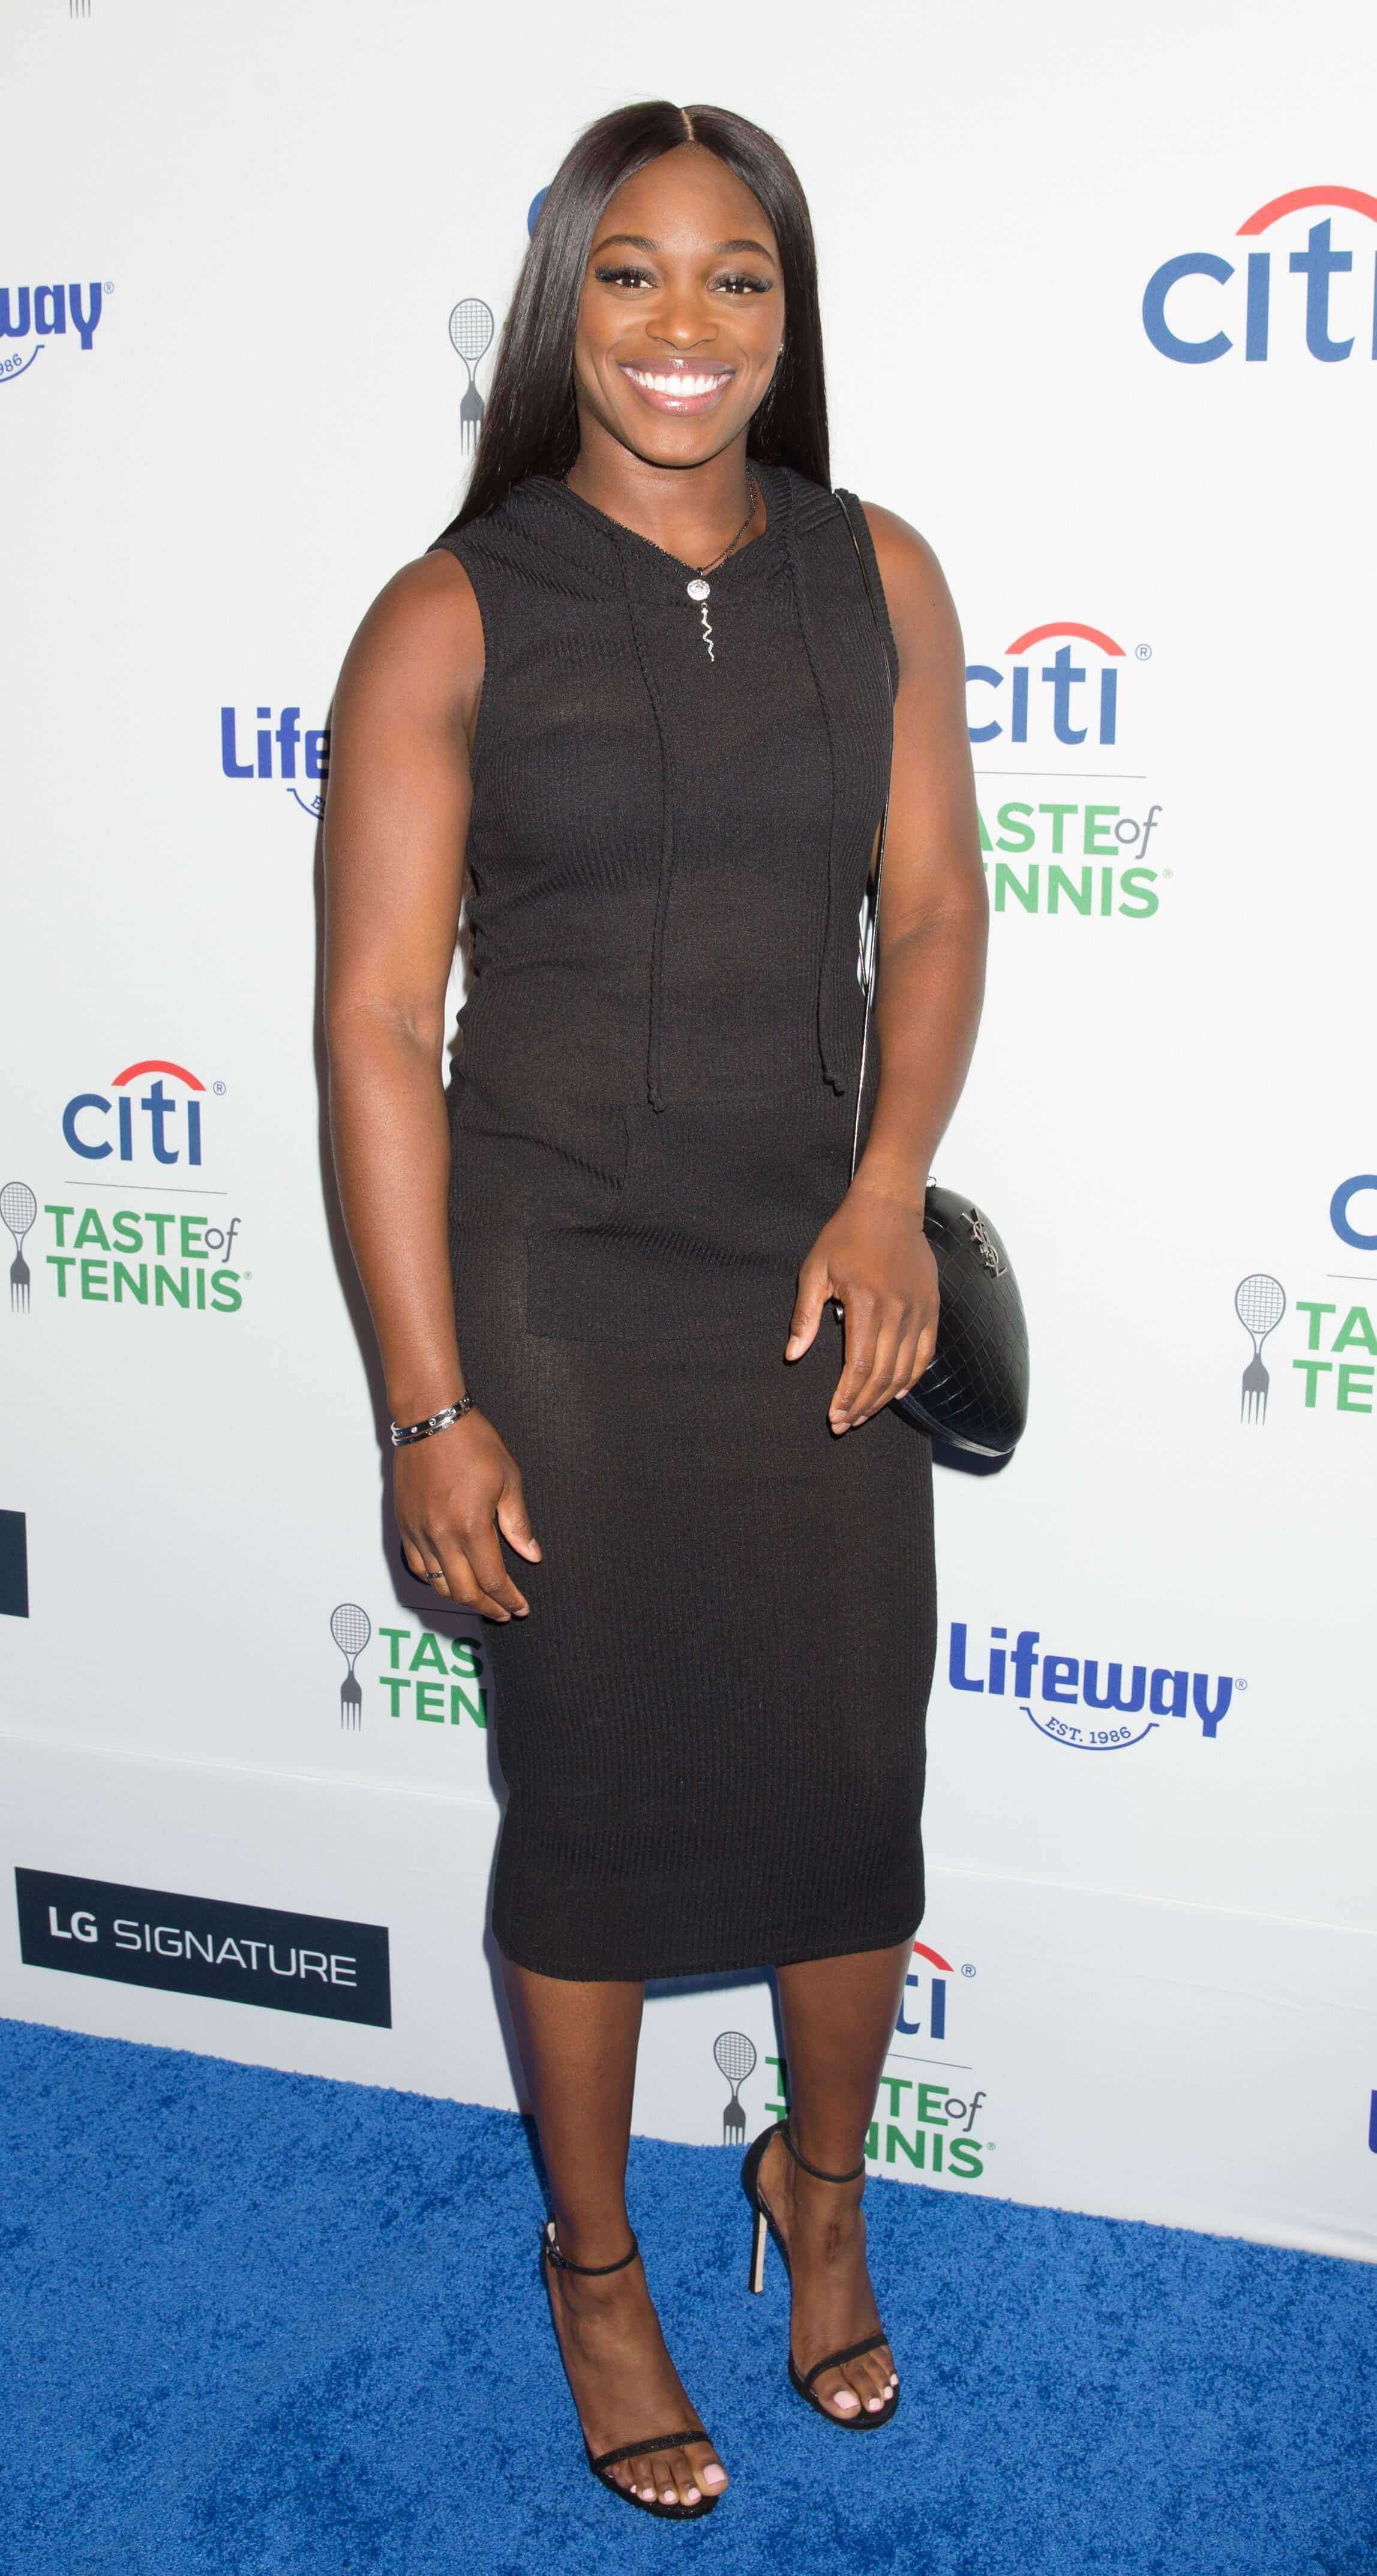 Sloane Stephens hot picture